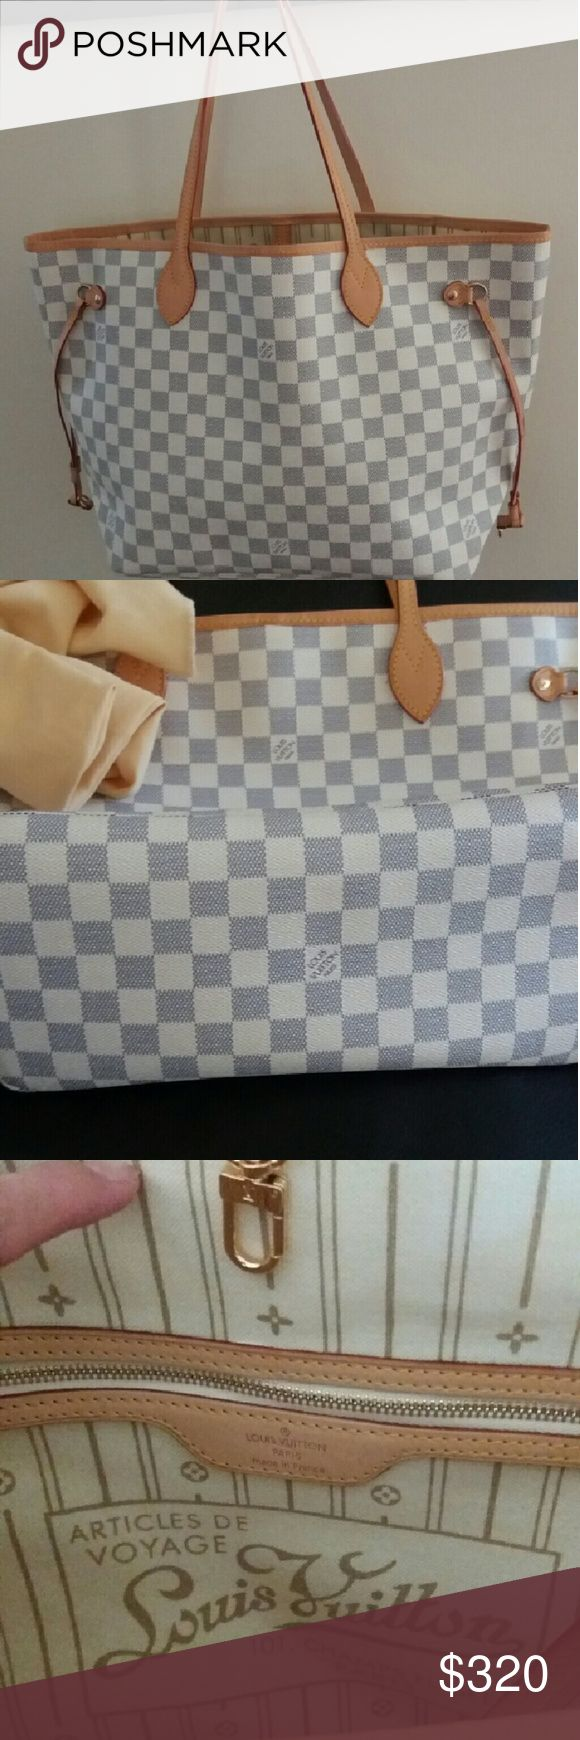 Checkered bag This is not auth its good quality.or money back Louis Vuitton Bags Shoulder Bags